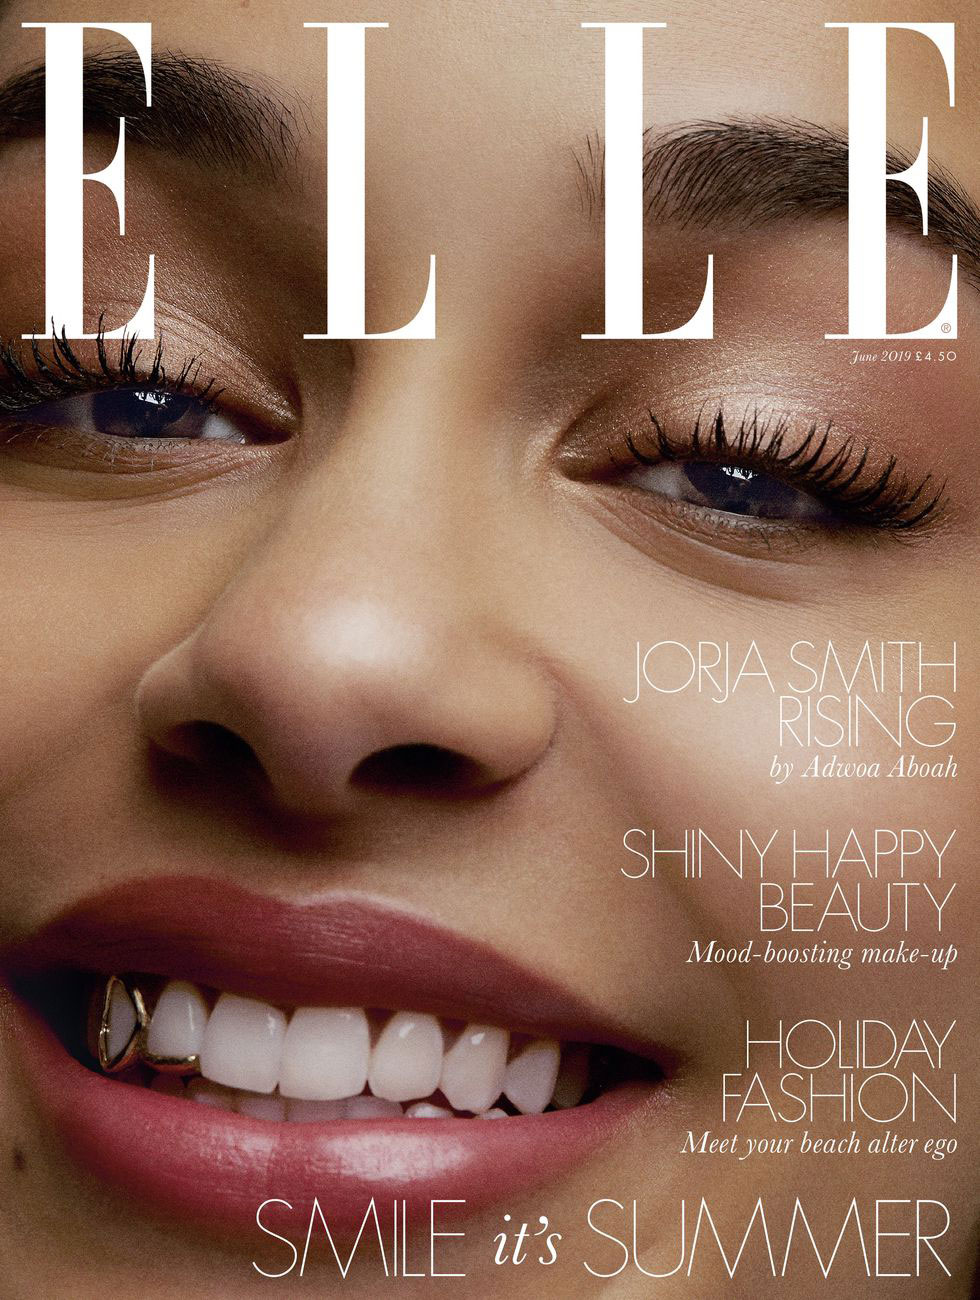 Jorja Smith X ELLE UK May 2019 | Numerique Retouch Photo Retouching Studio